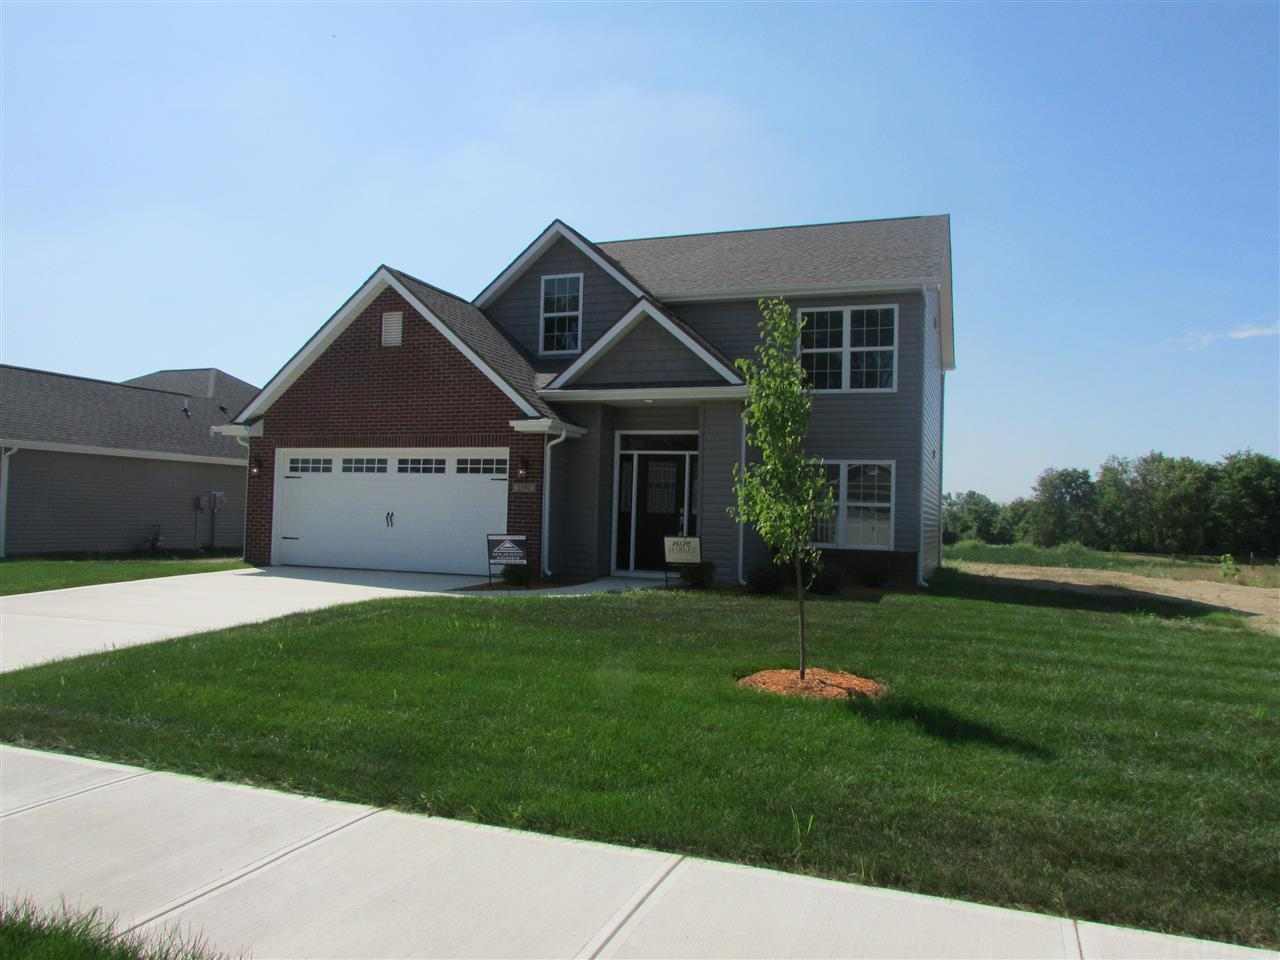 1591 Breckenridge Pass, Fort Wayne, IN 46845